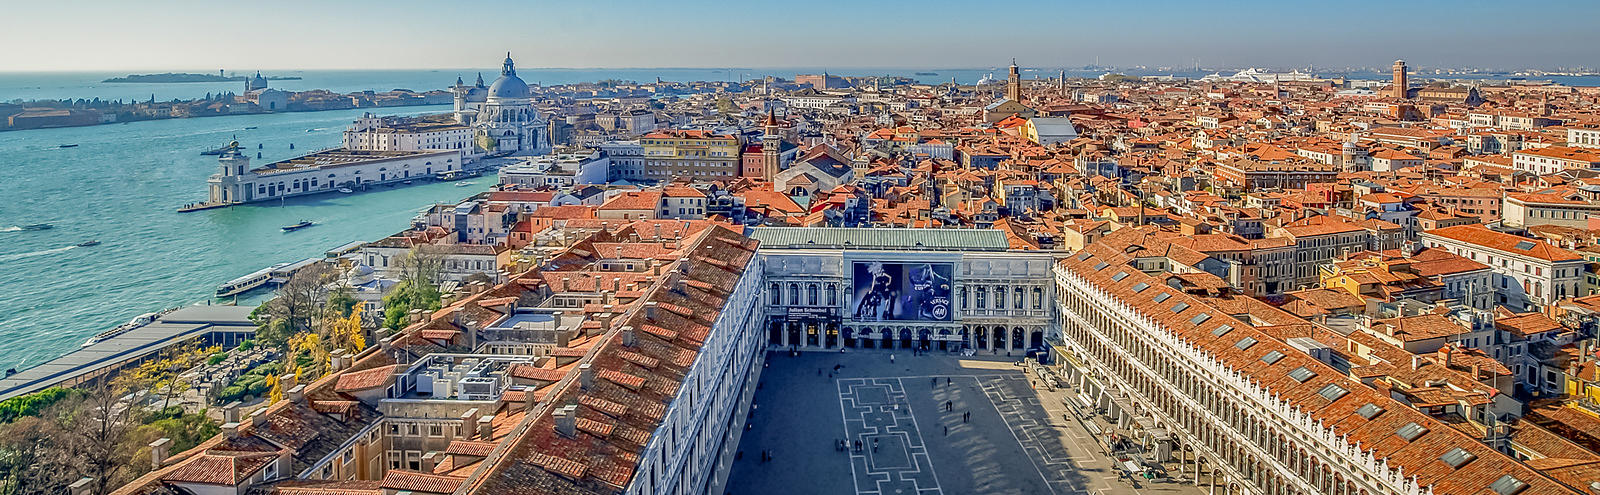 Aerial View of St Mark's Square, Venice